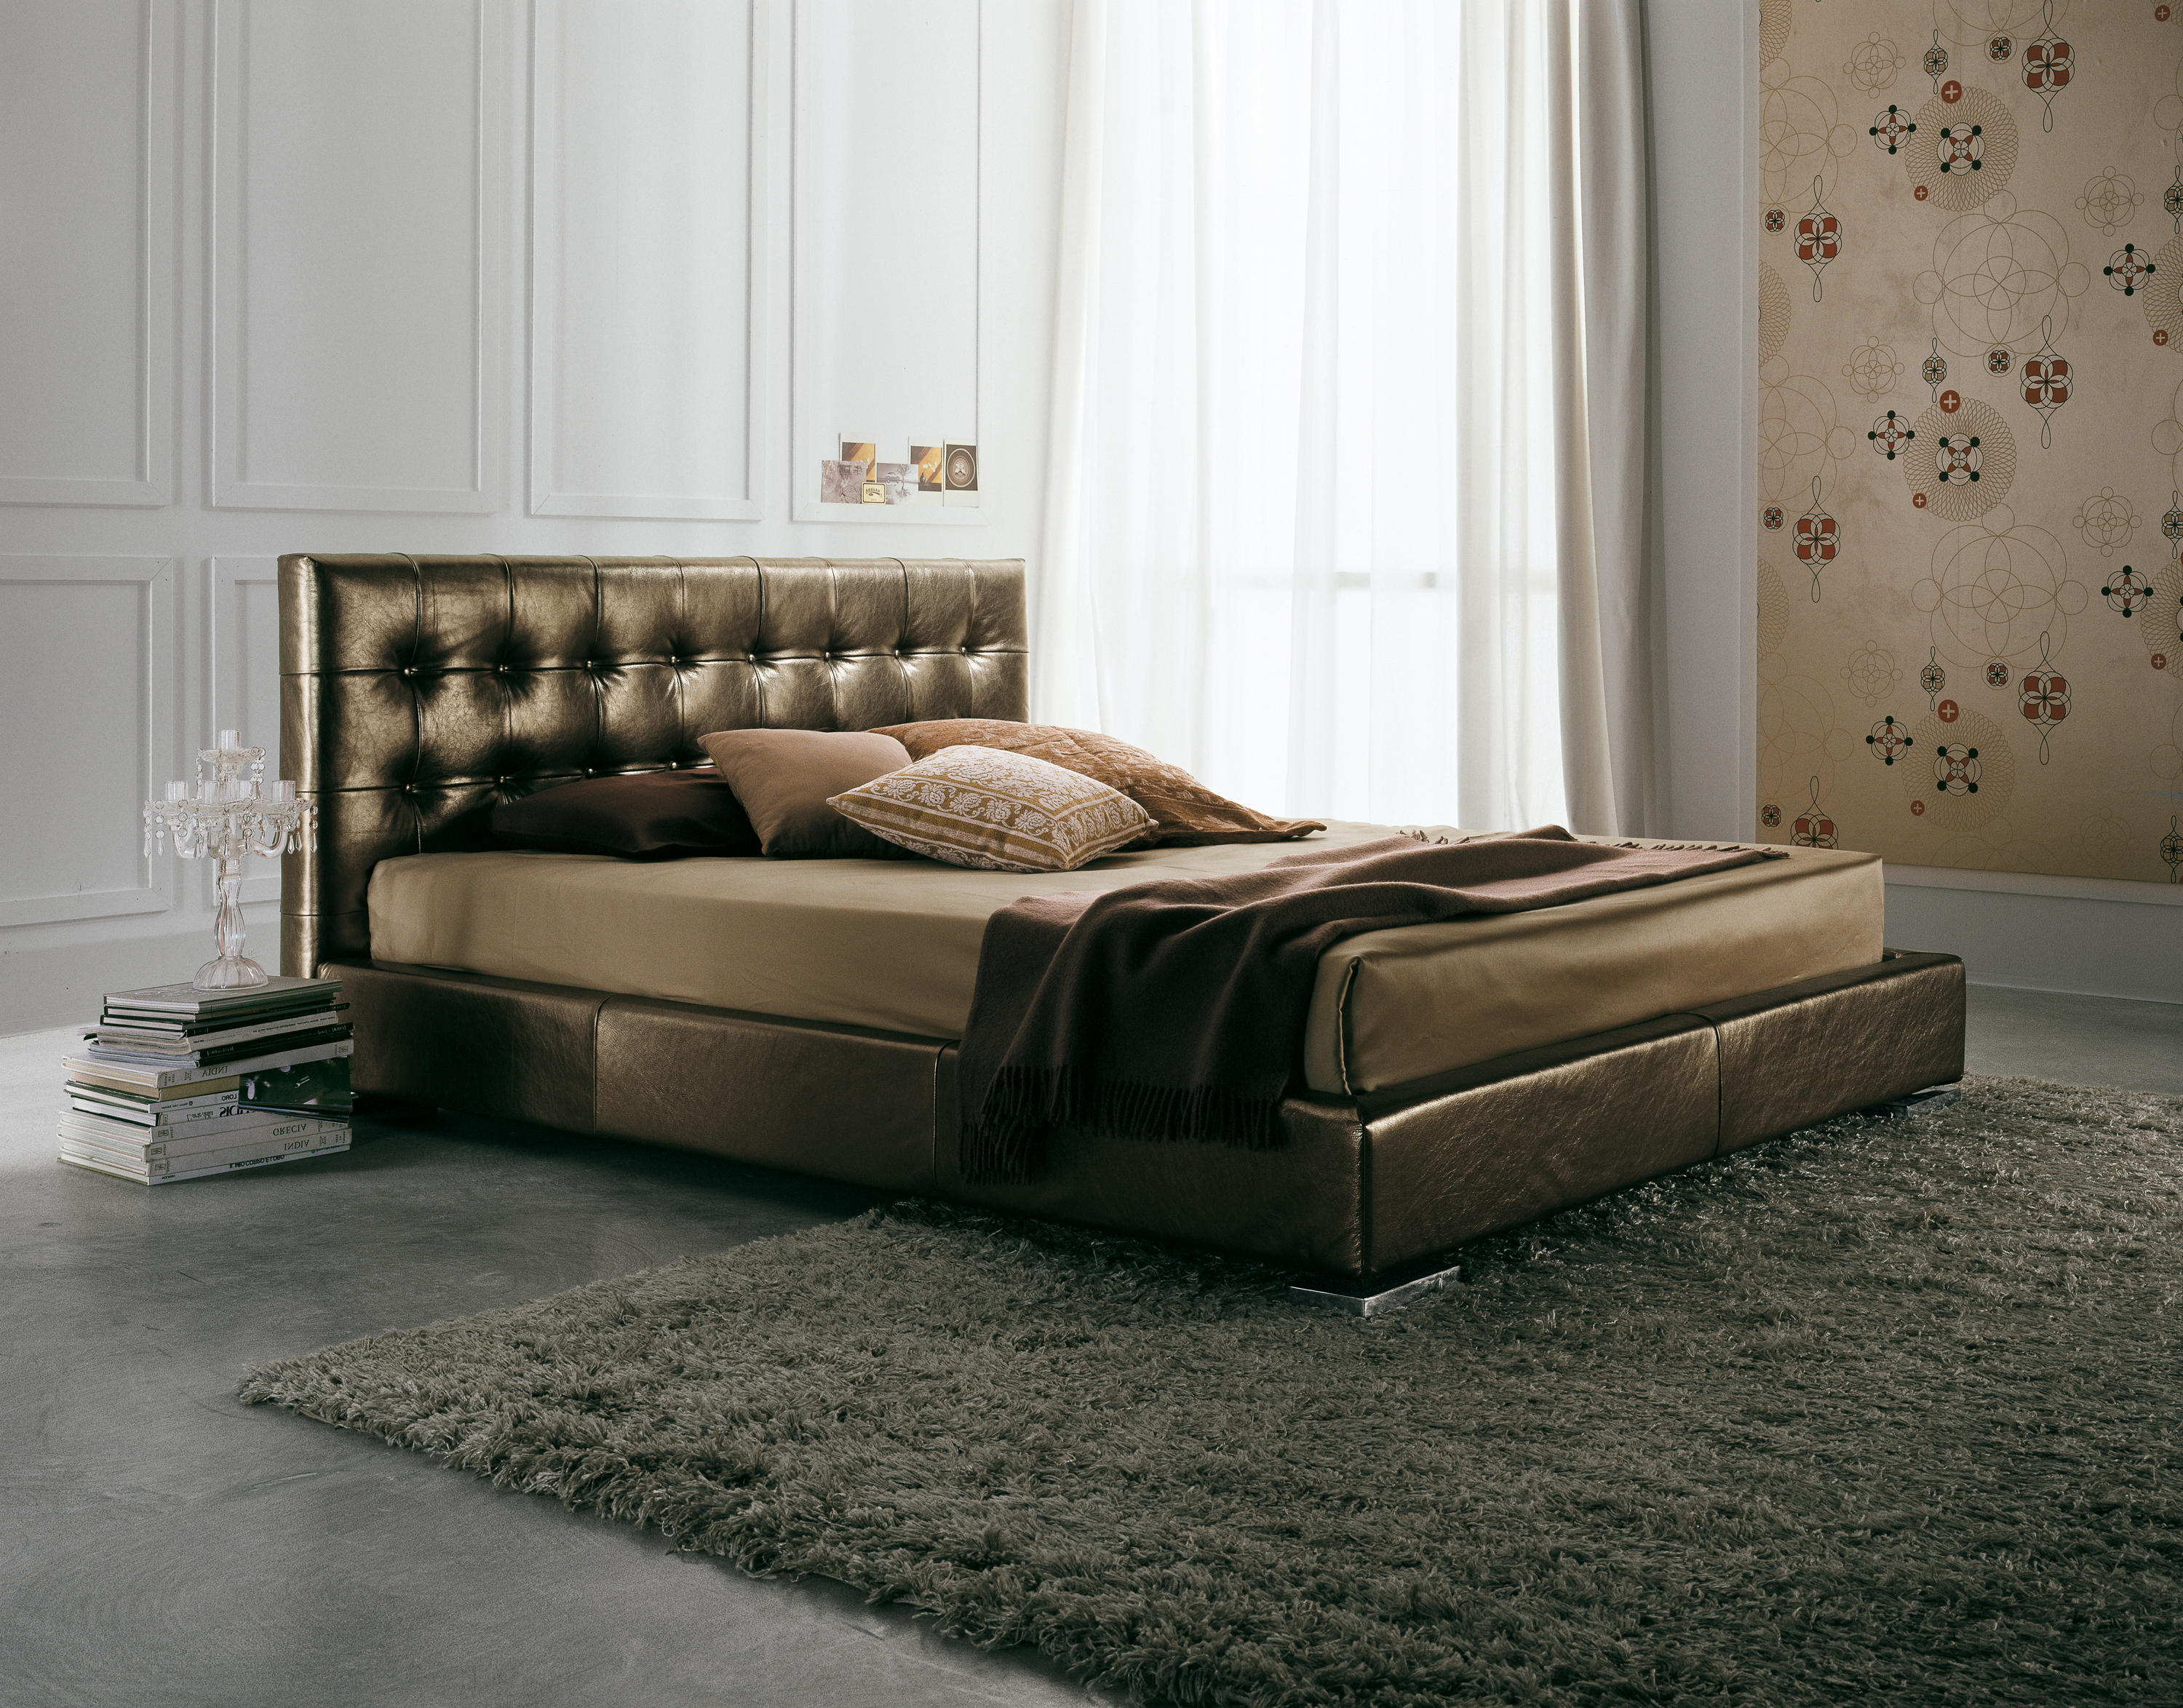 Wonderful Vogue By Bolzan Letti | Bedroom Furniture ...